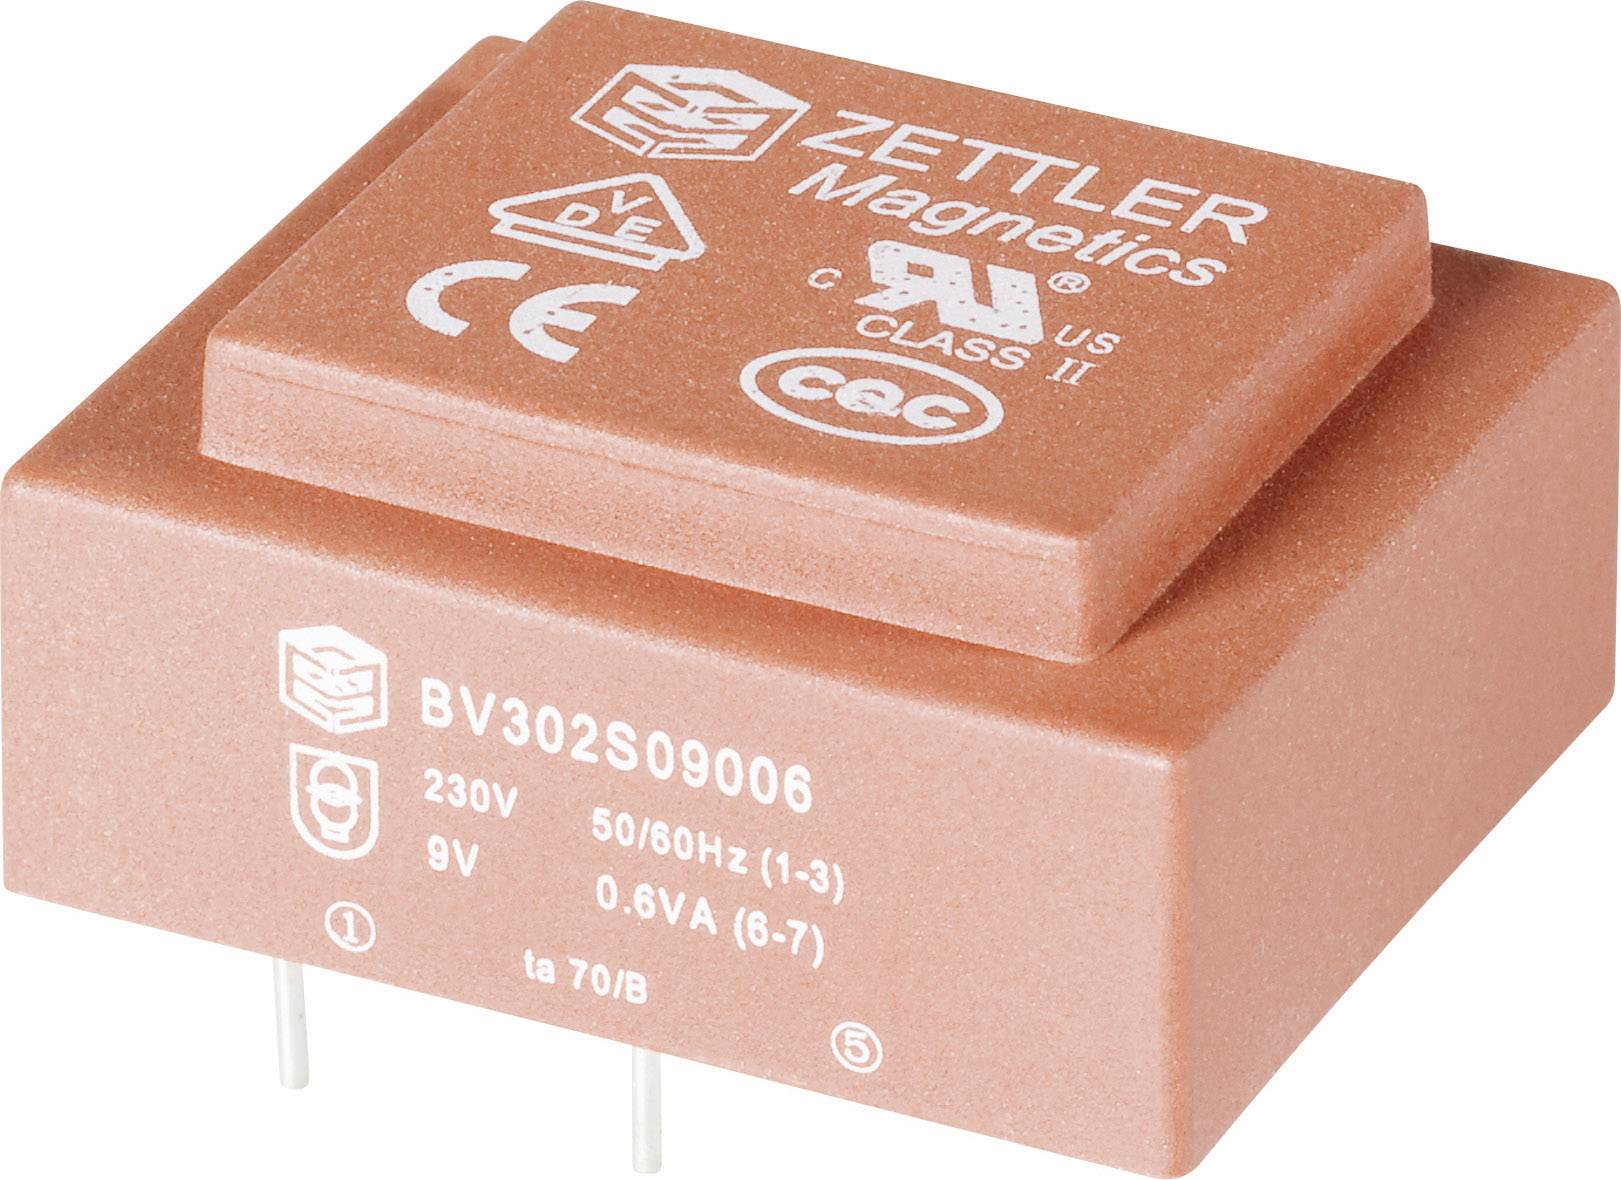 Transformátor do DPS Zettler Magnetics El30, 230 V/18 V, 33 mA, 0,6 VA